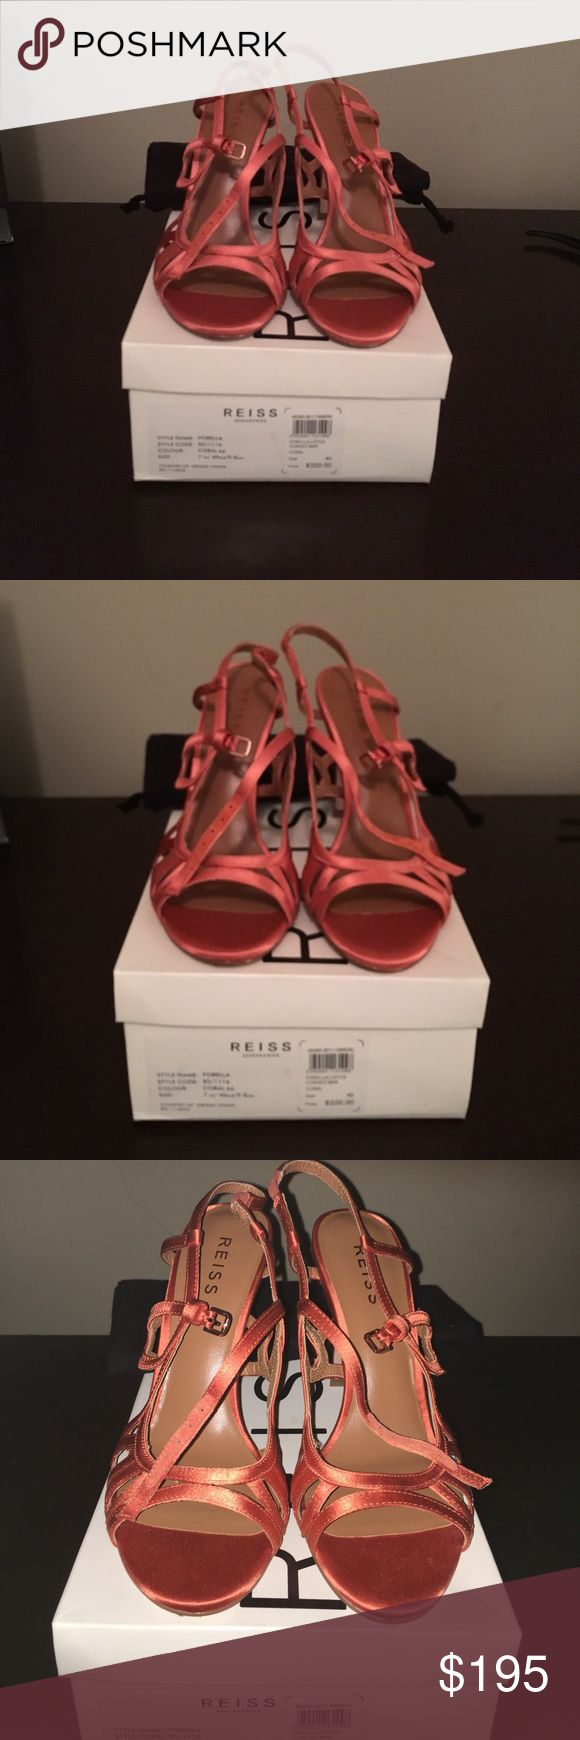 Reiss Sandals ( never worn ) Brand new Coral Satin Sandals. Size 40. US-9.5. Leather soles. Reiss Shoes Sandals